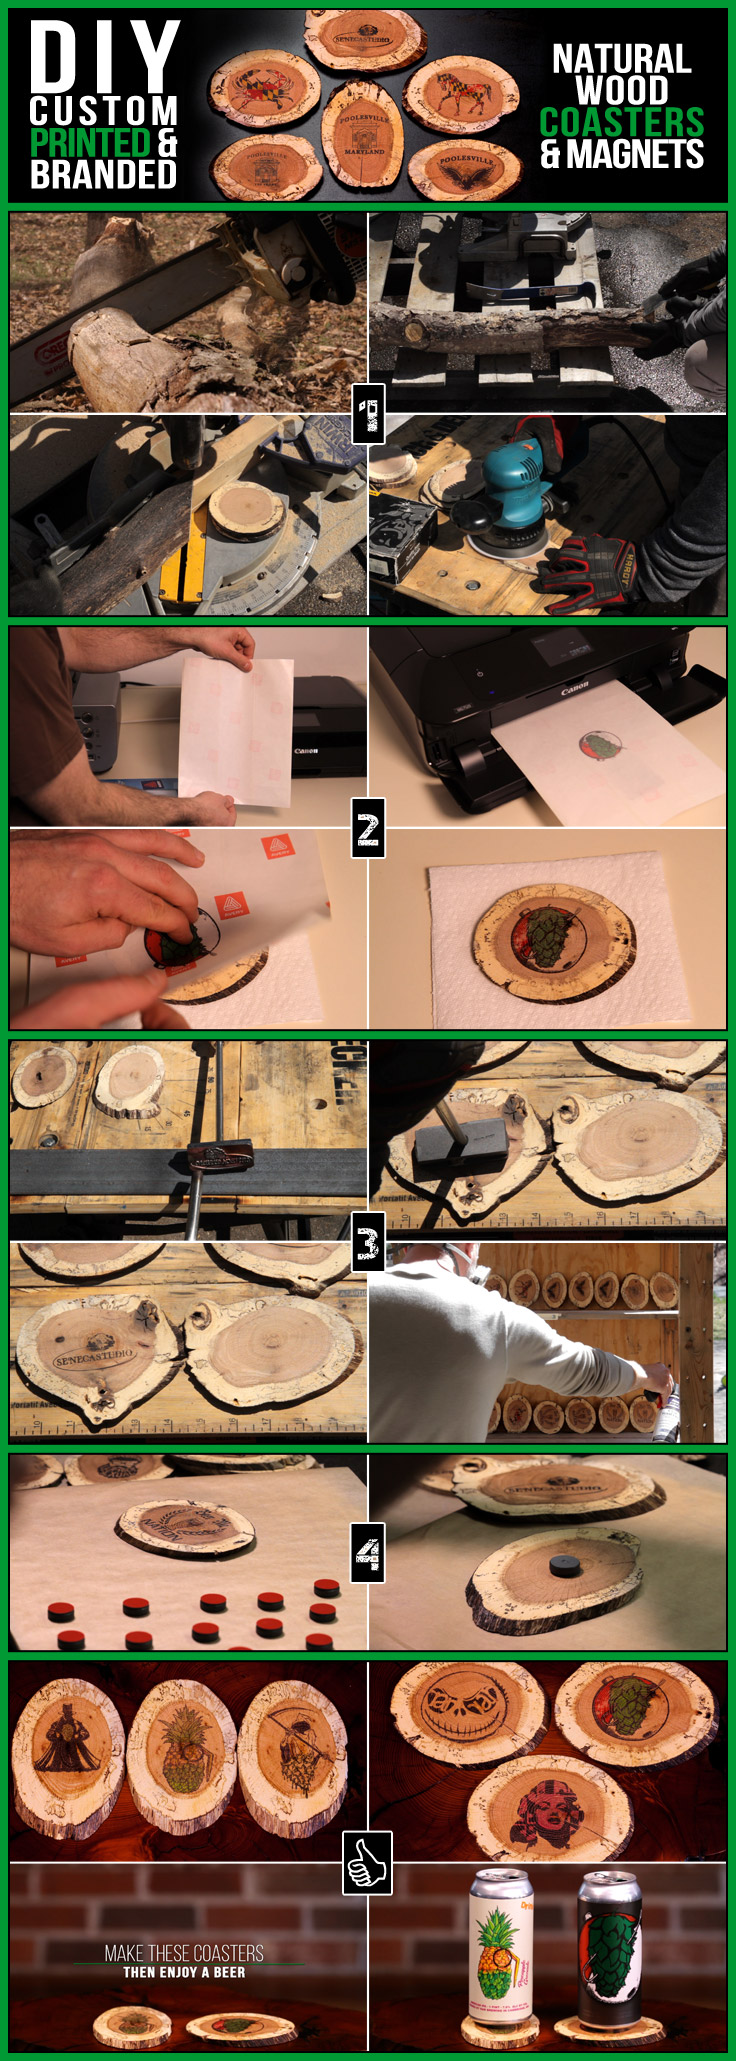 DIY custom print & brand these natural wood coasters & magnets with a home printer & basic tools using a sustainably harvested tree limb/log. This simple wood working project can easily be made at home and makes for a great, customized DIY gift!